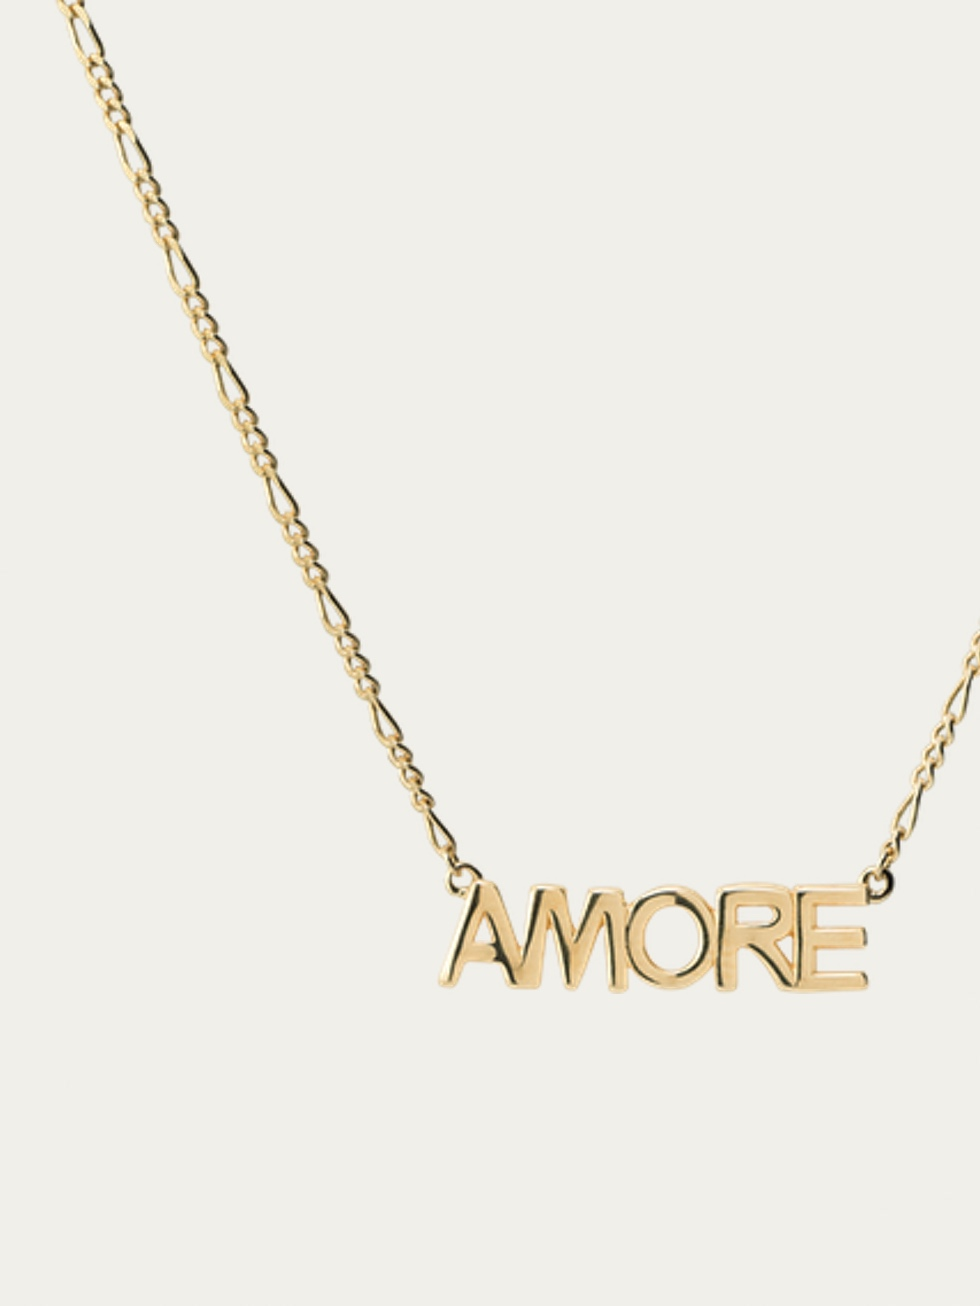 TB AMORE gold necklace